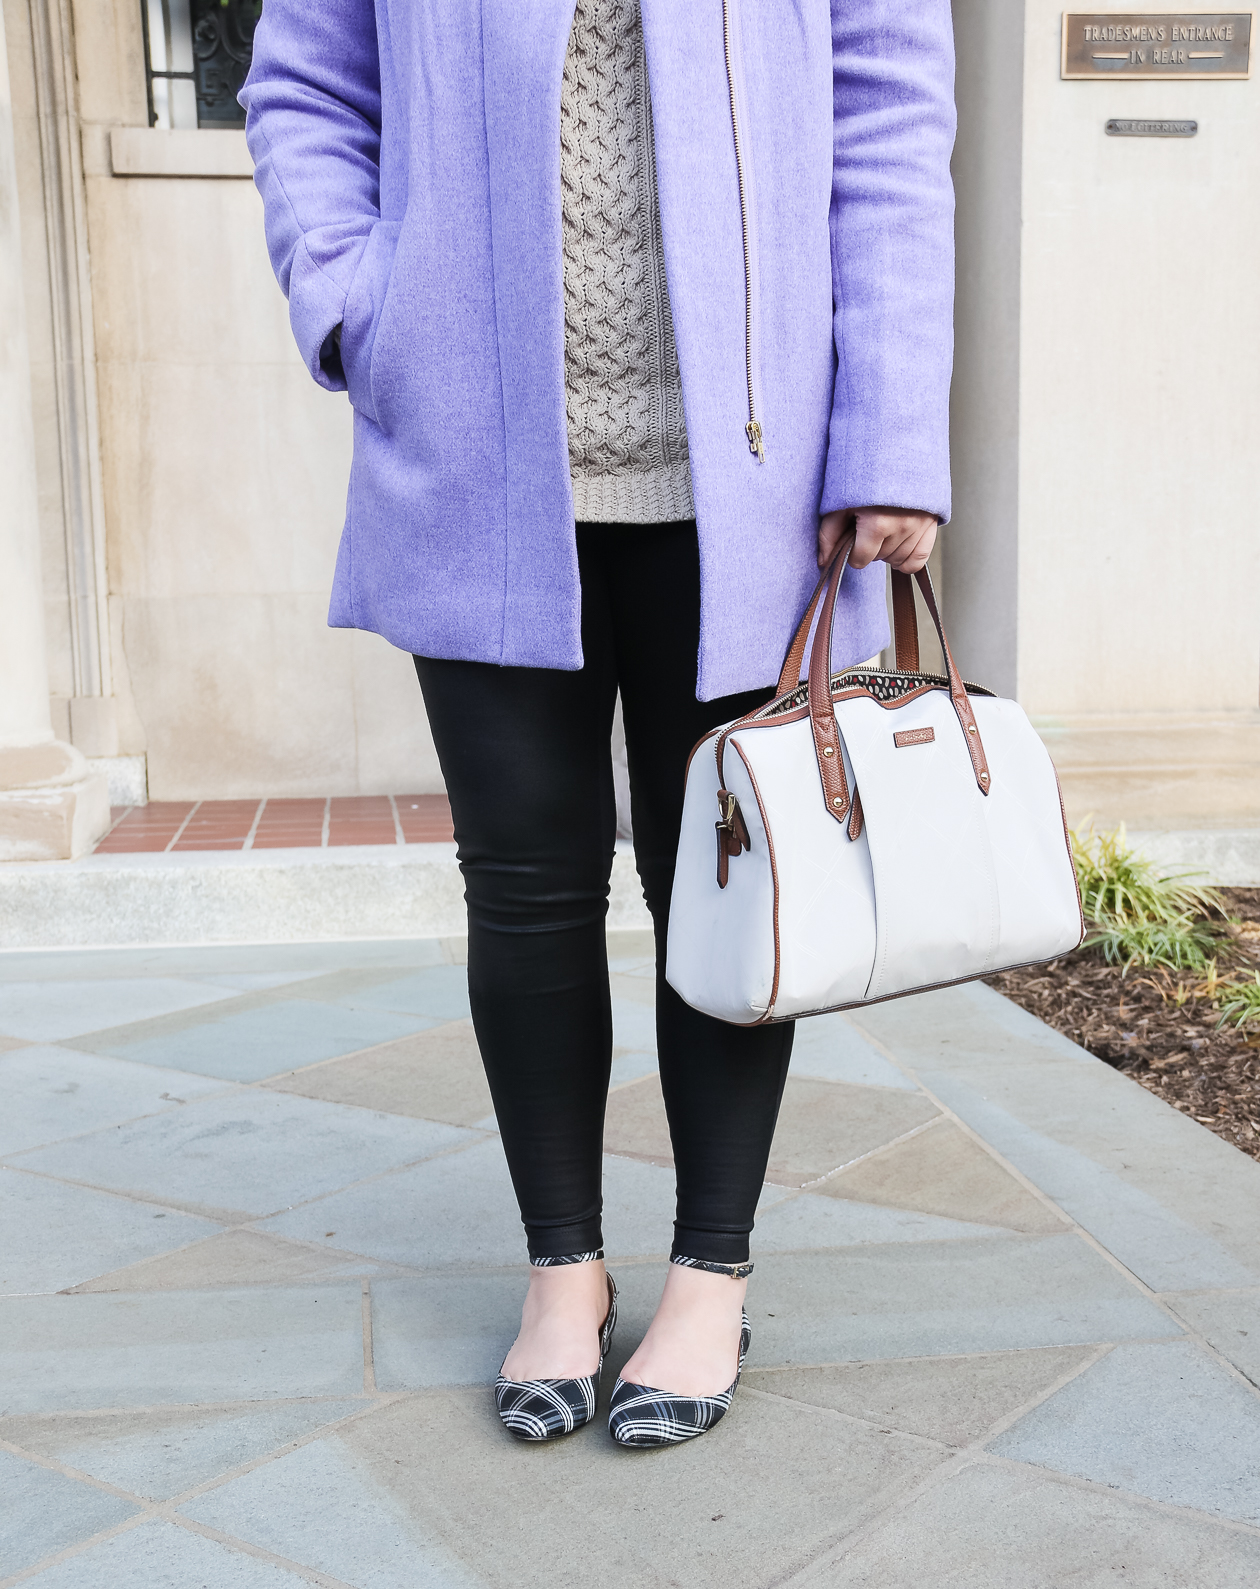 Faux Leather Leggings | @dcgirlinpearls